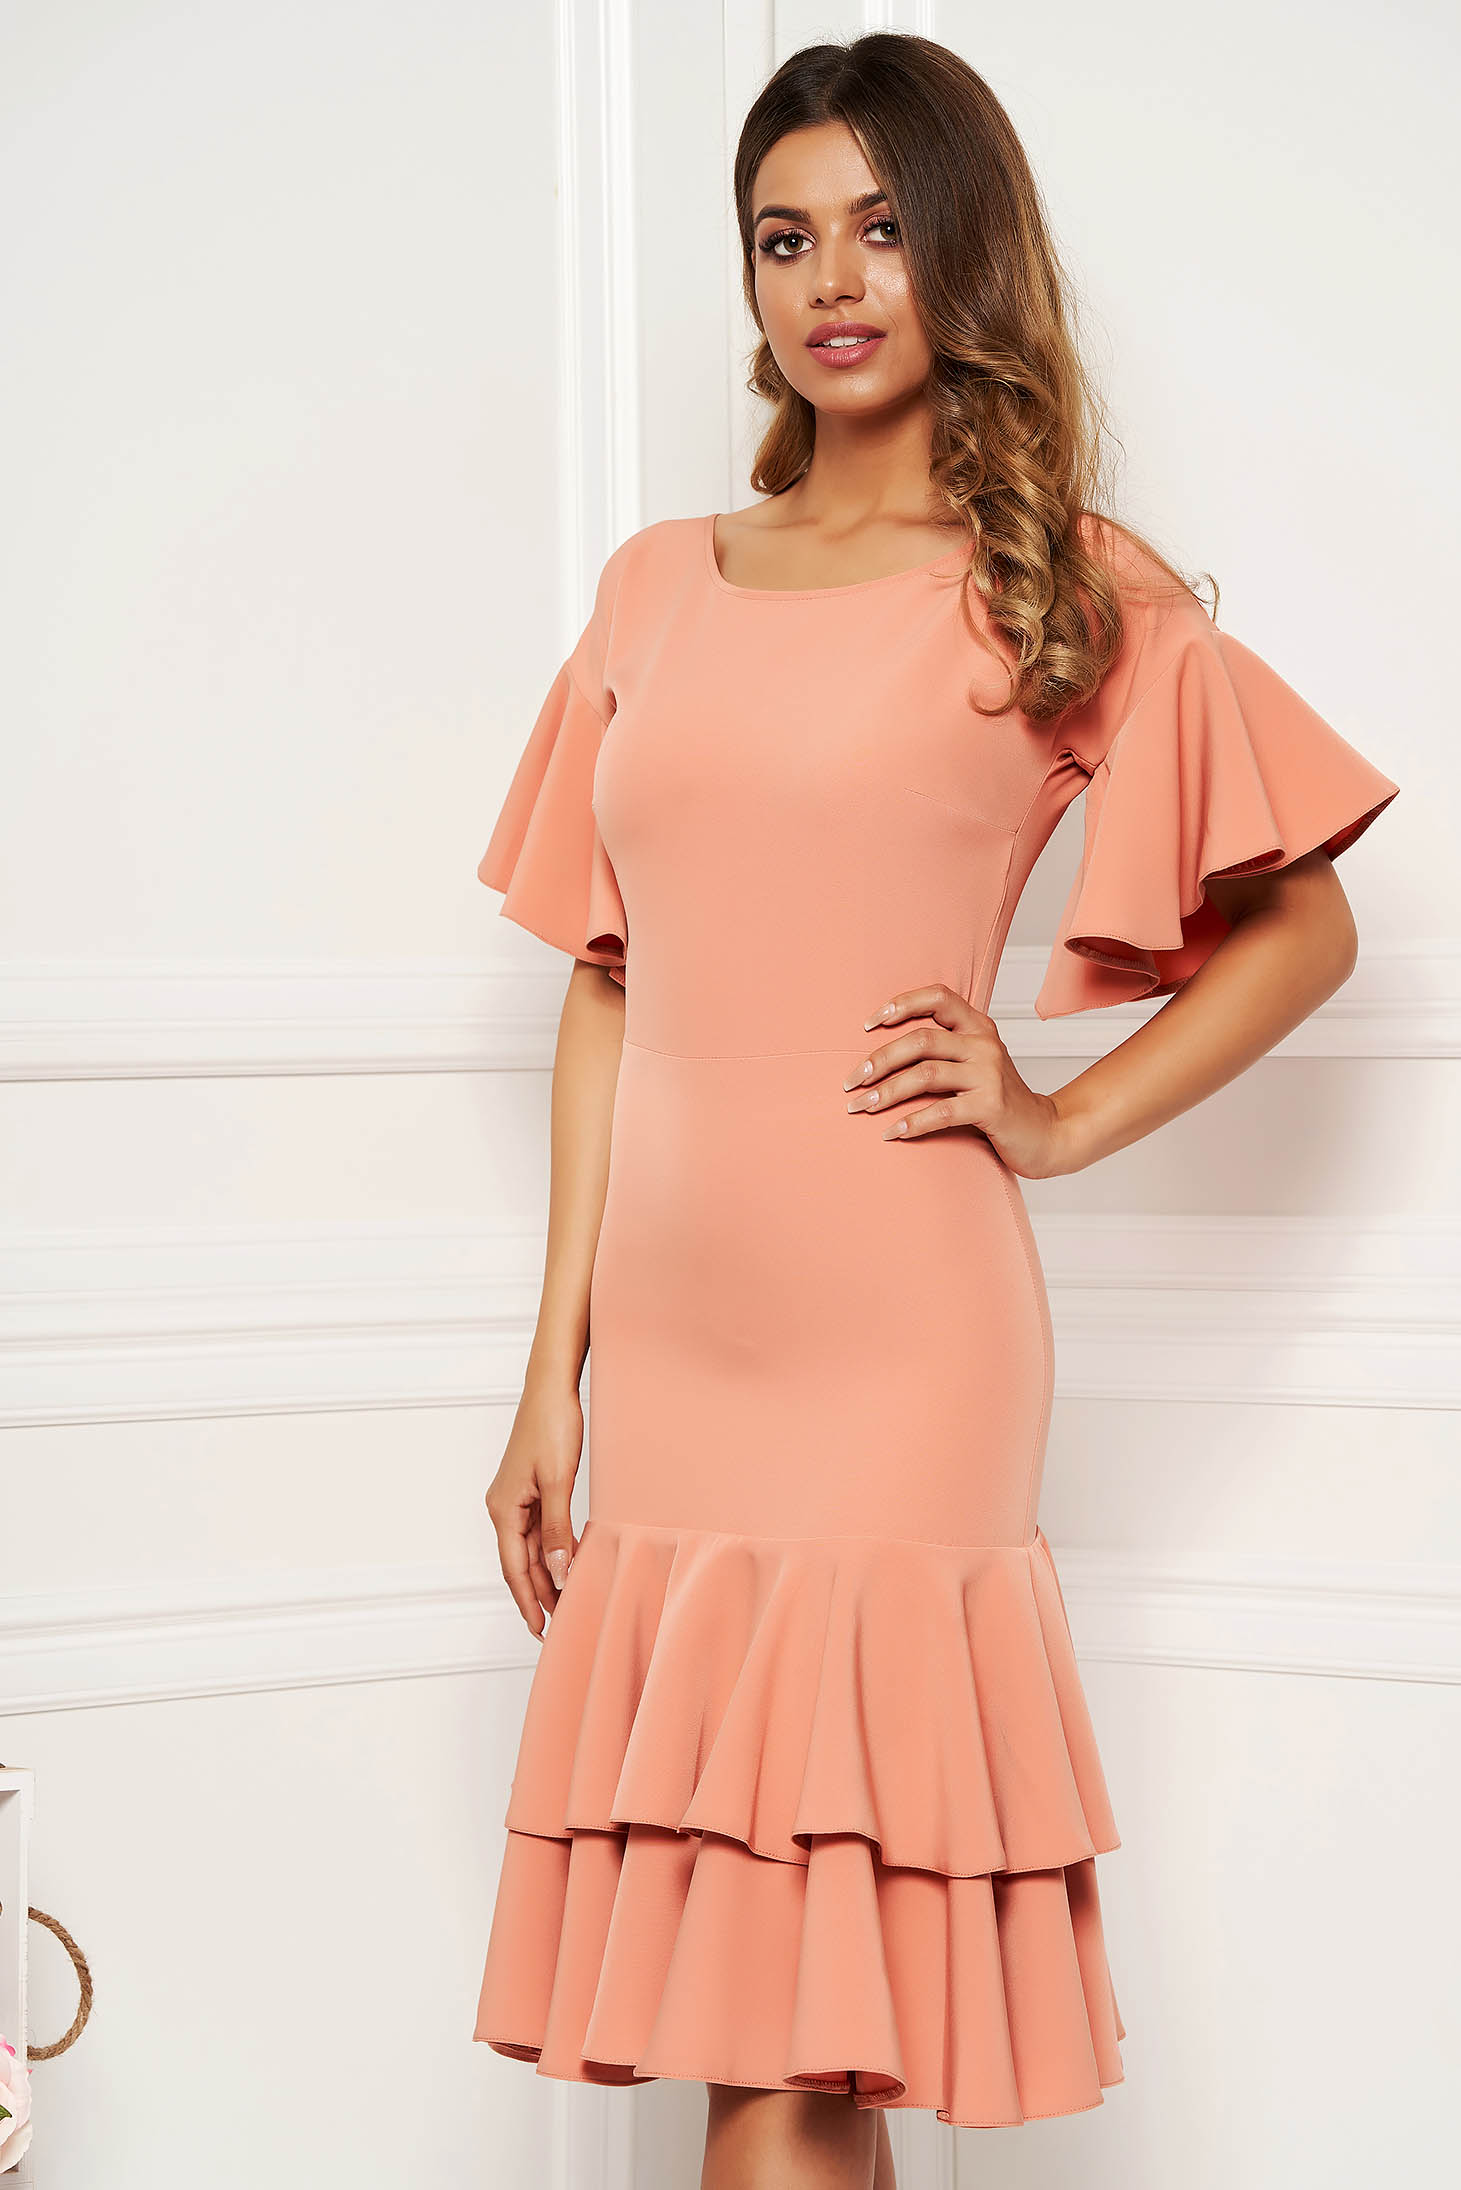 Peach elegant midi short sleeves dress slightly elastic fabric with ruffles at the buttom of the dress